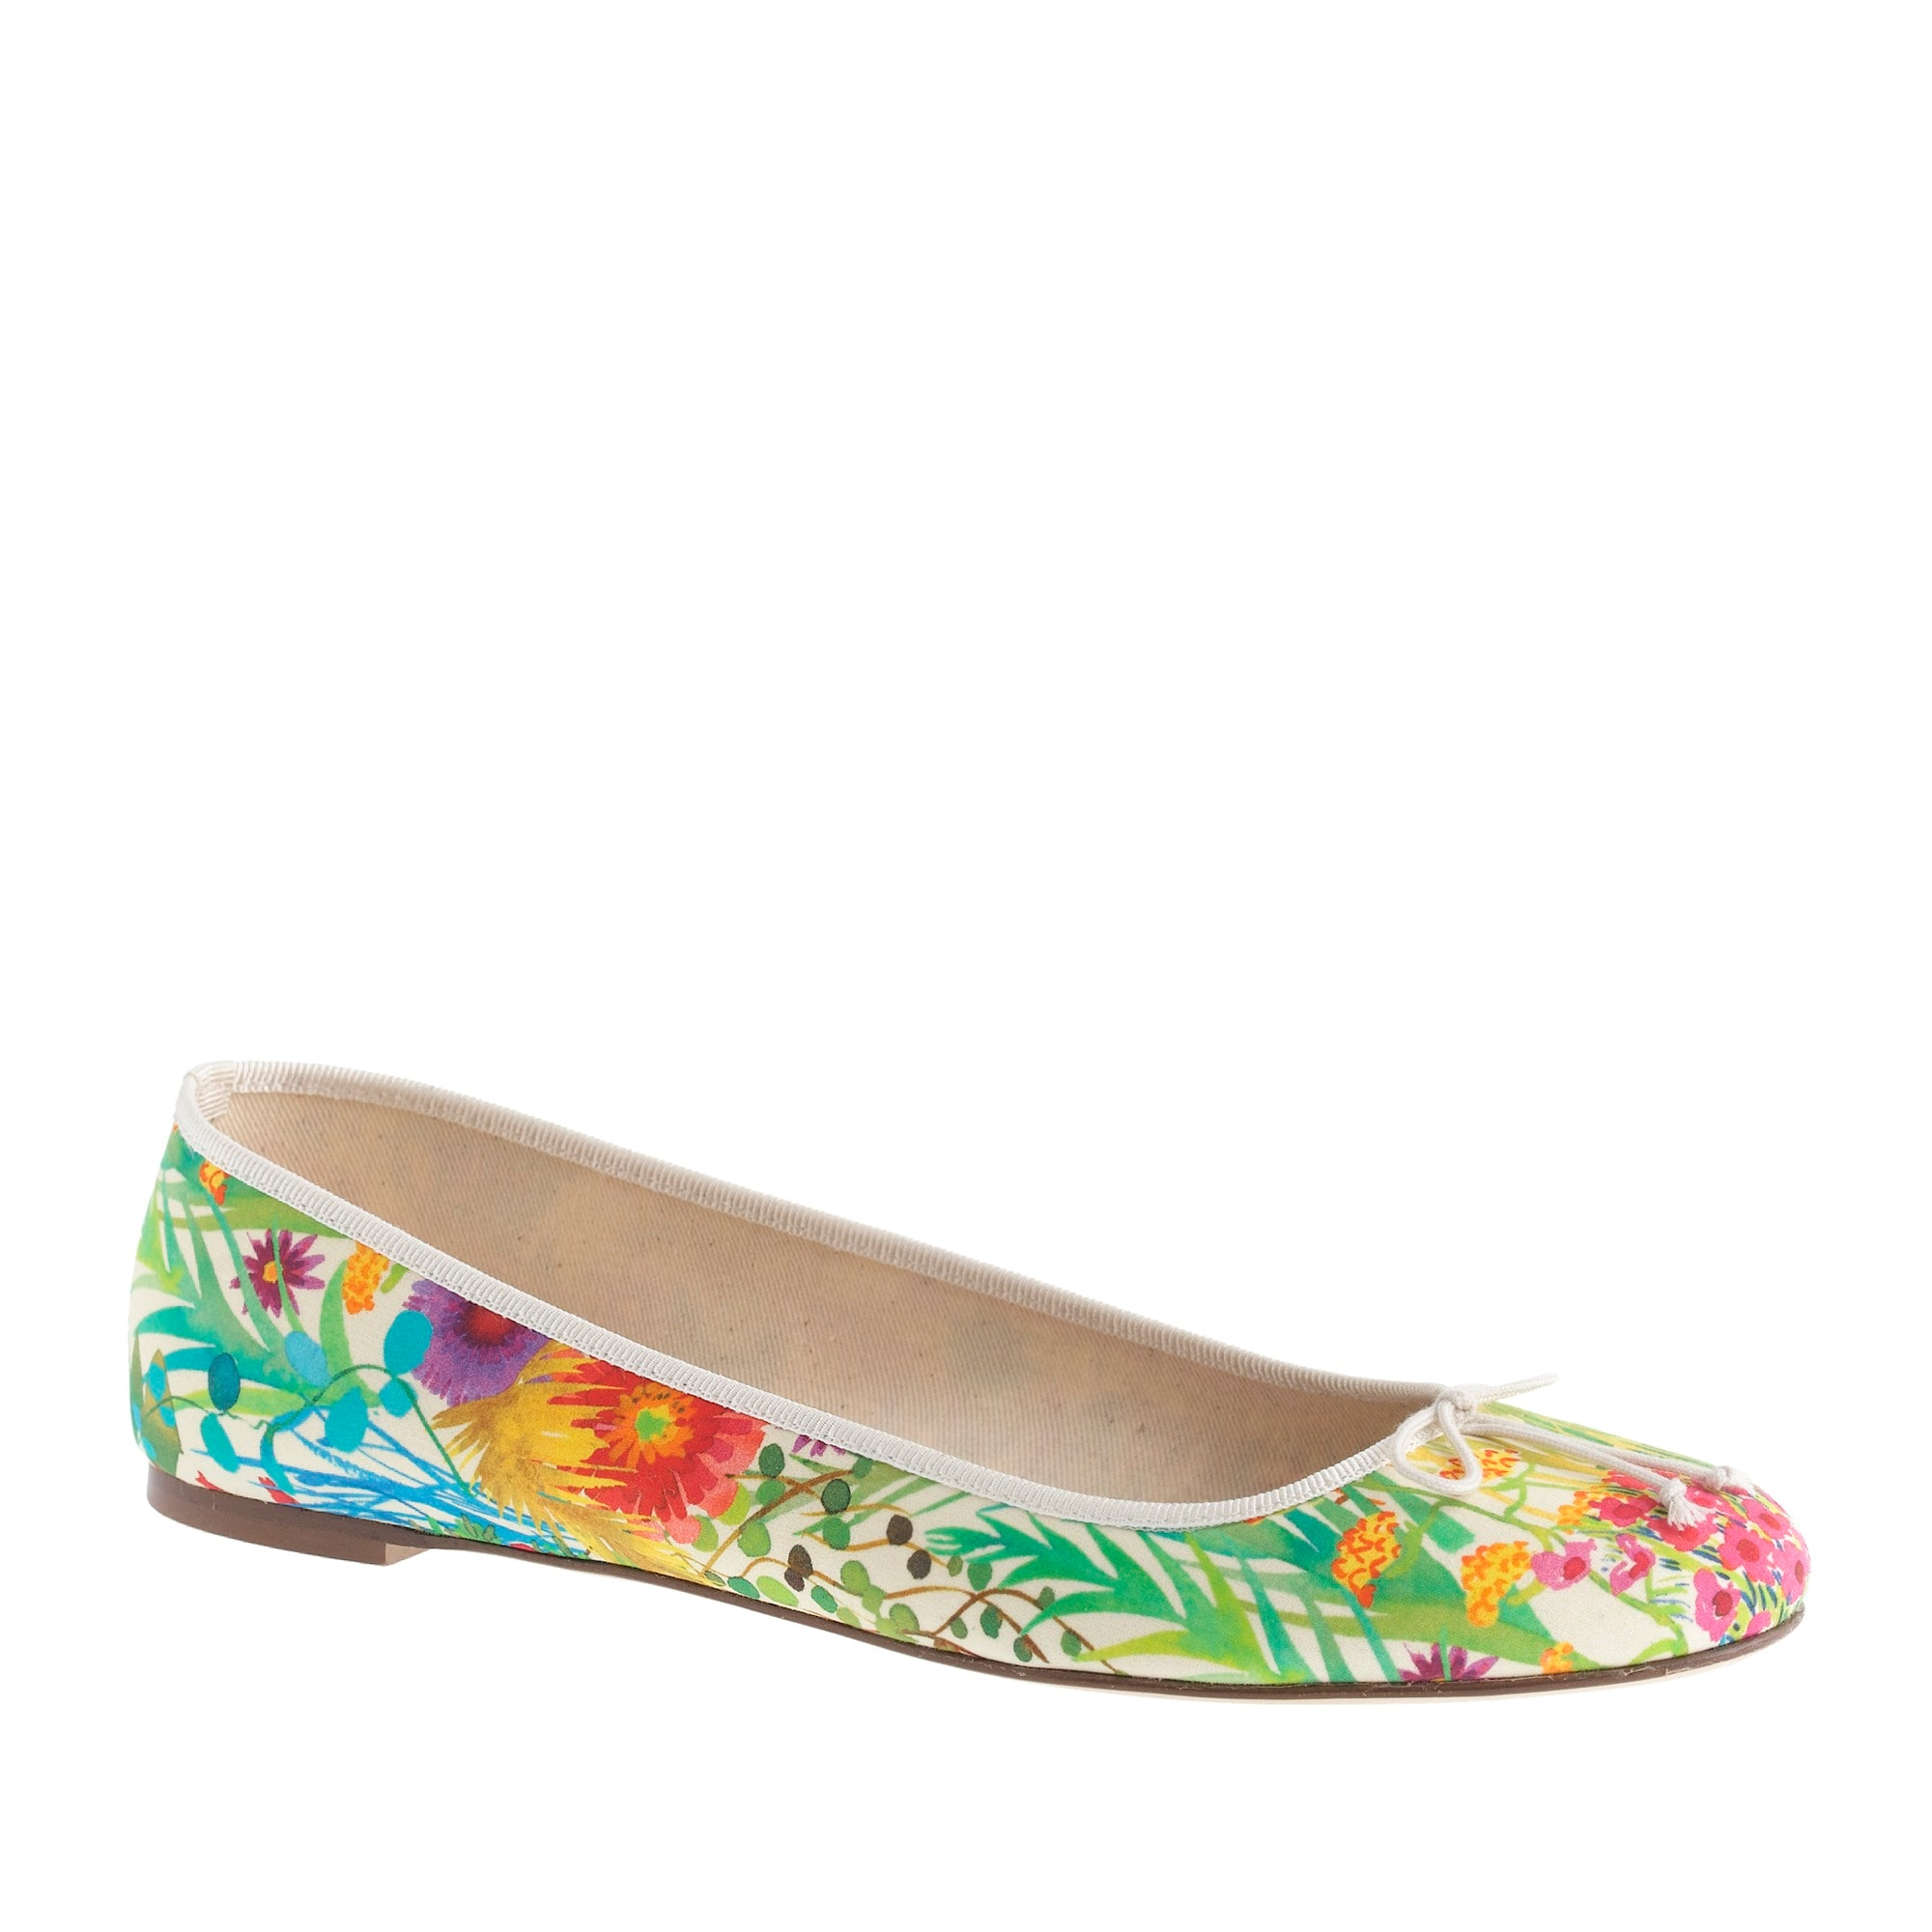 Image 5 for Collection classic Liberty floral ballet flats